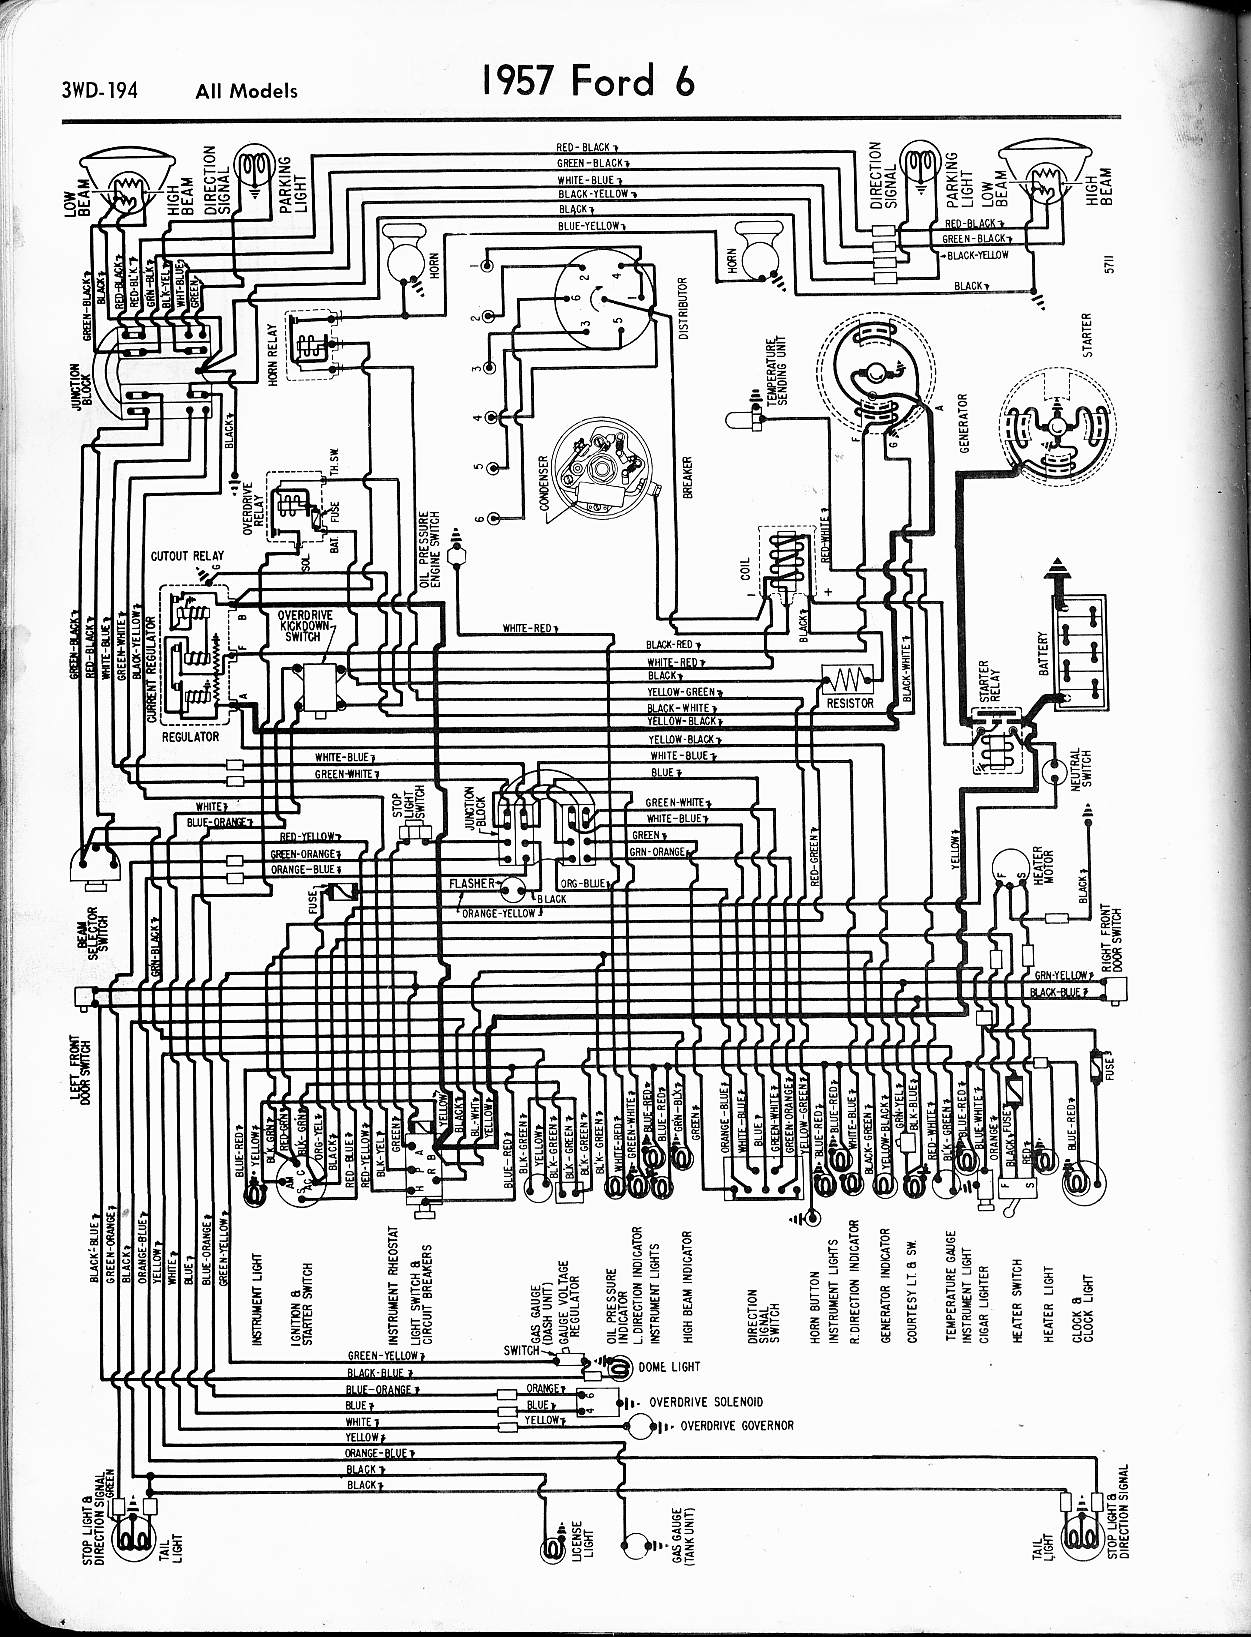 1967 Thunderbird Turn Signal Diagram Wiring Schematic 67 Chevy Truck Ford Diagrams Schema 1965